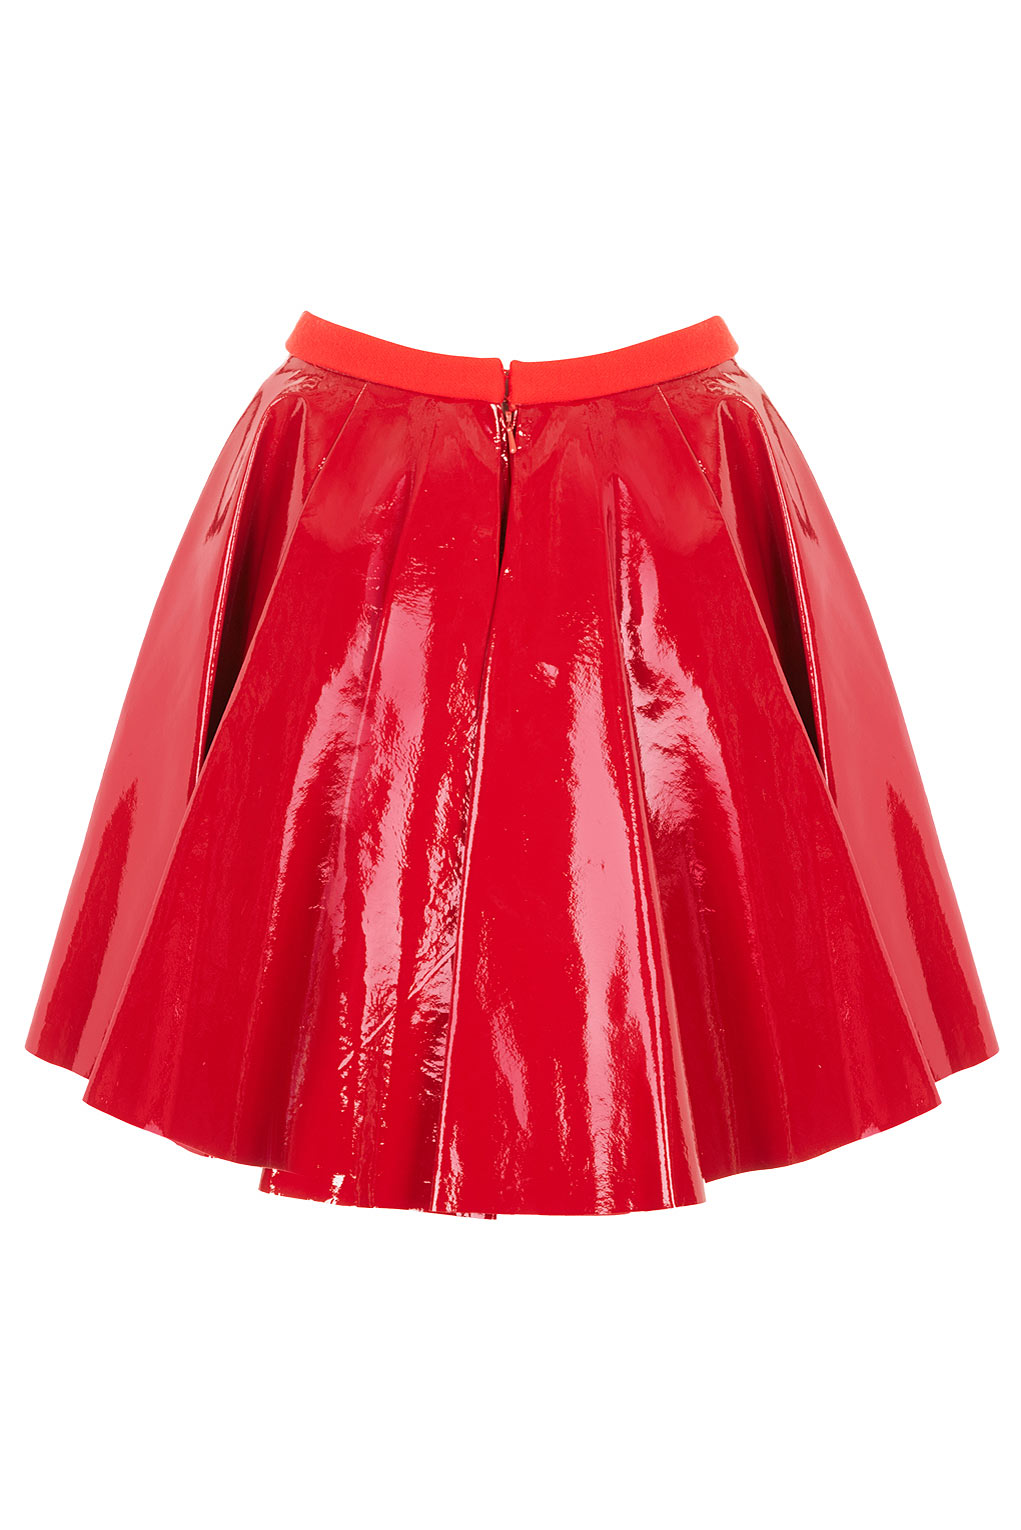 topshop patent leather flippy skirt by unique in lyst